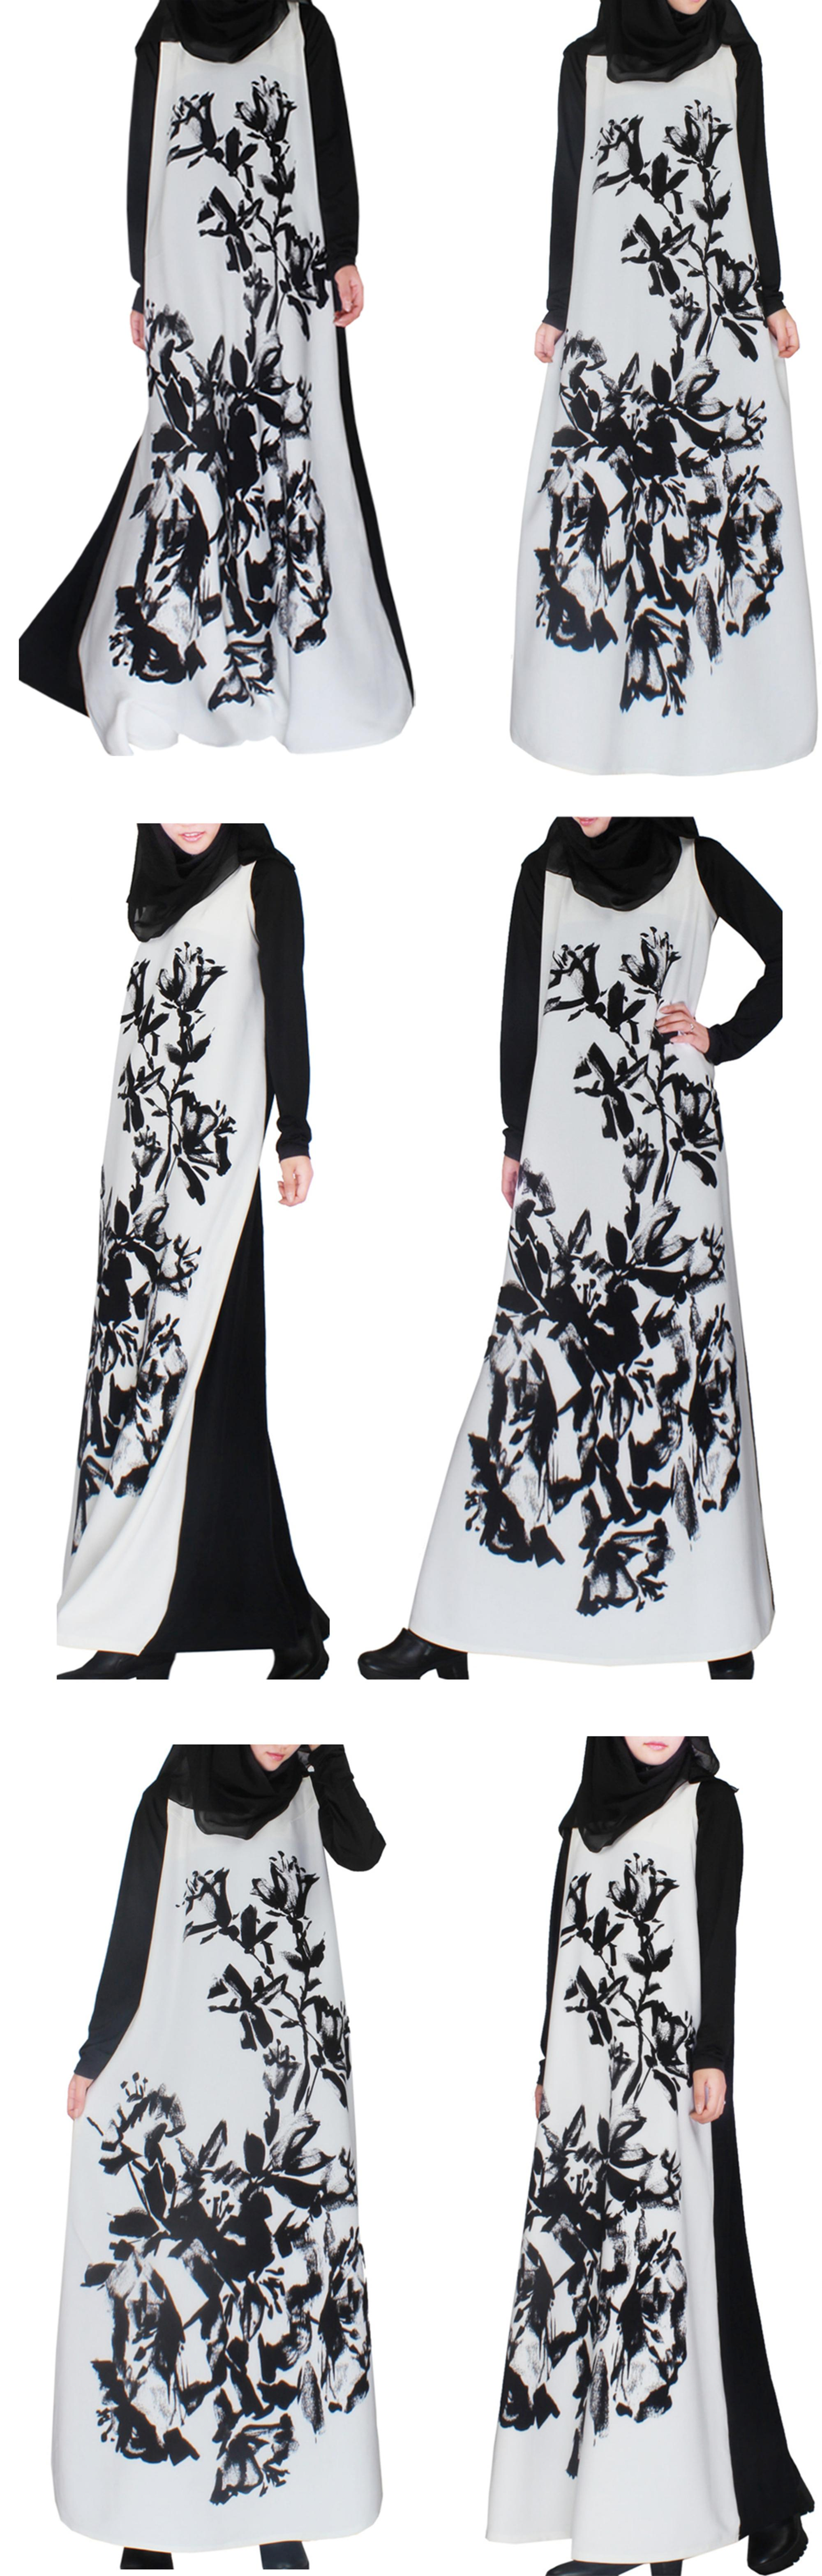 2018 Make to order traditional ink printing long sleeve muslim abaya wholesale women long dress islamic clothing for women